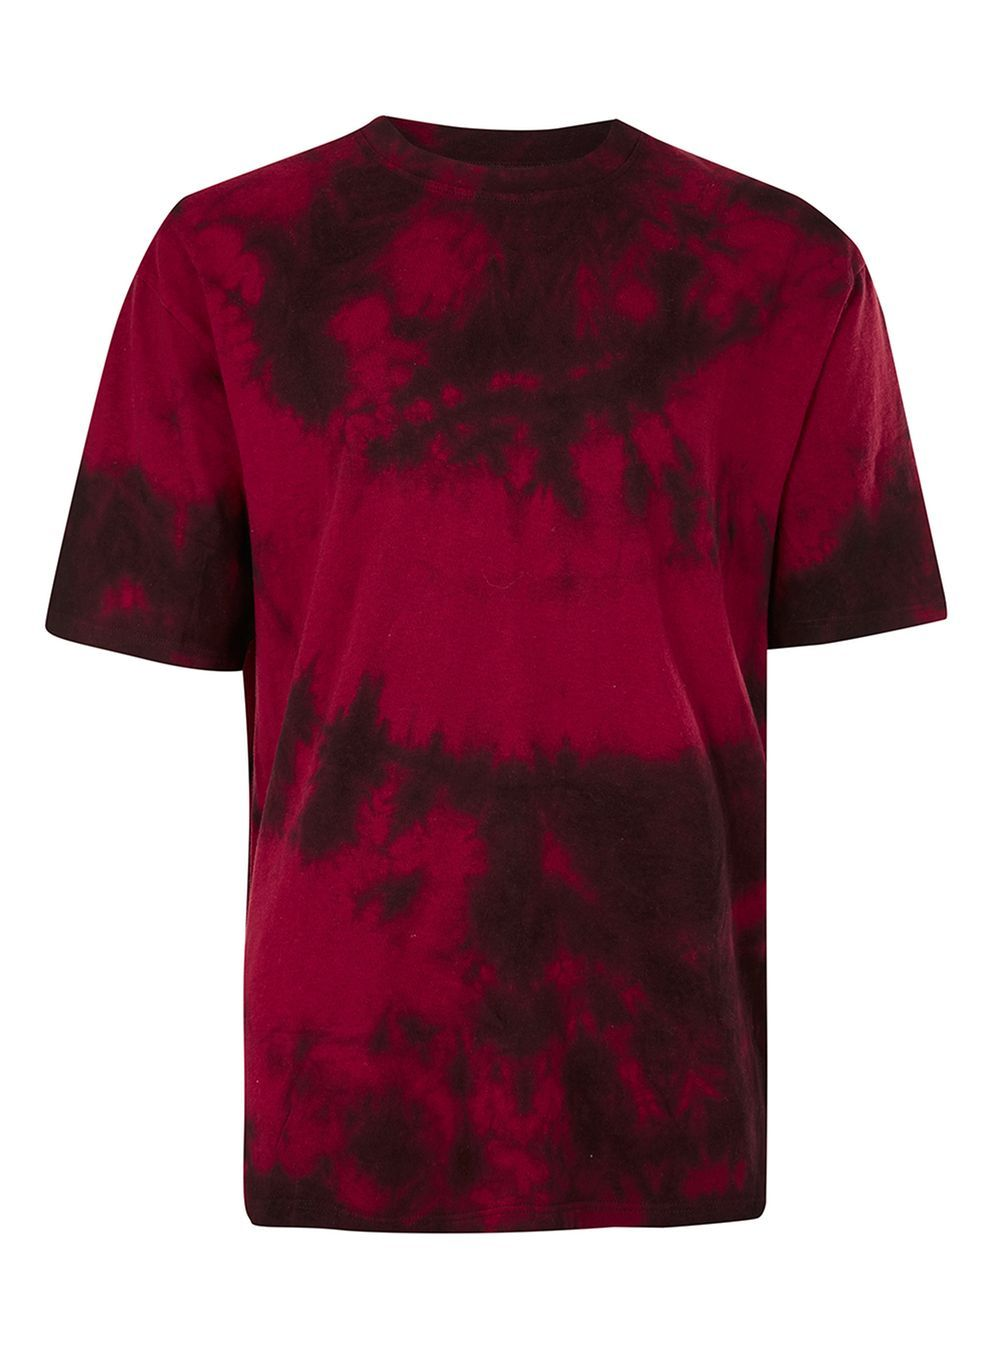 Red and Black Tie Dye Oversized T-Shirt | Black tie and Tye dye